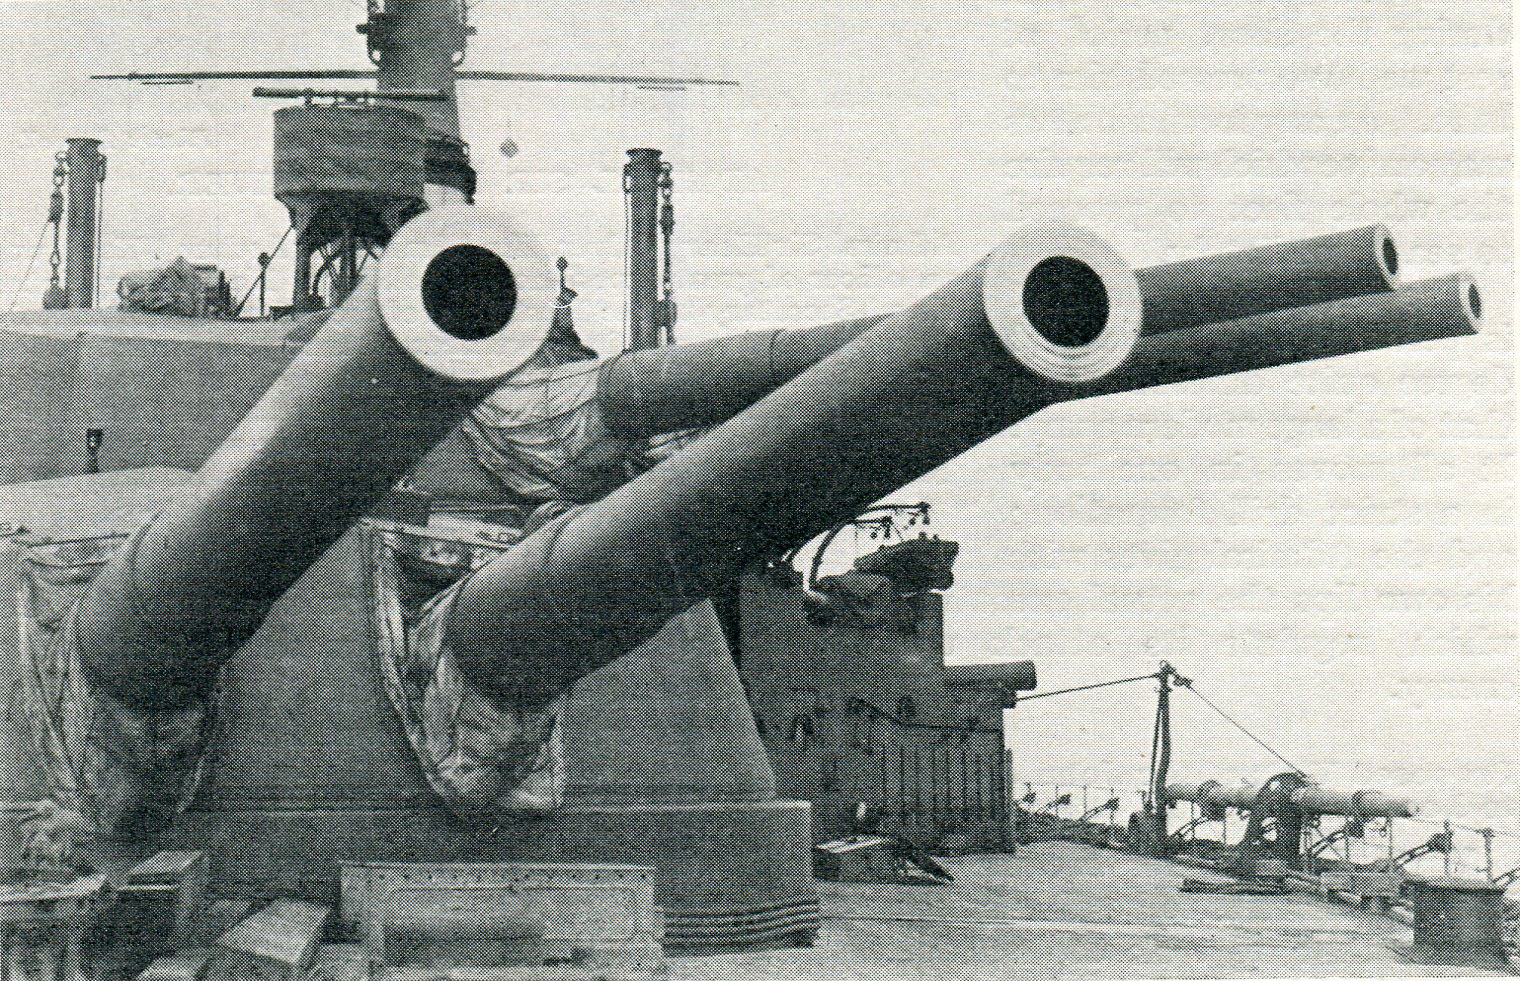 13.5 inch guns of the British Battleship HMS Ajax: Ajax fought at the Battle of Jutland on 31st May 1916 in the 2nd Battle Squadron commanded by Vice Admiral Sir Thomas Jerram